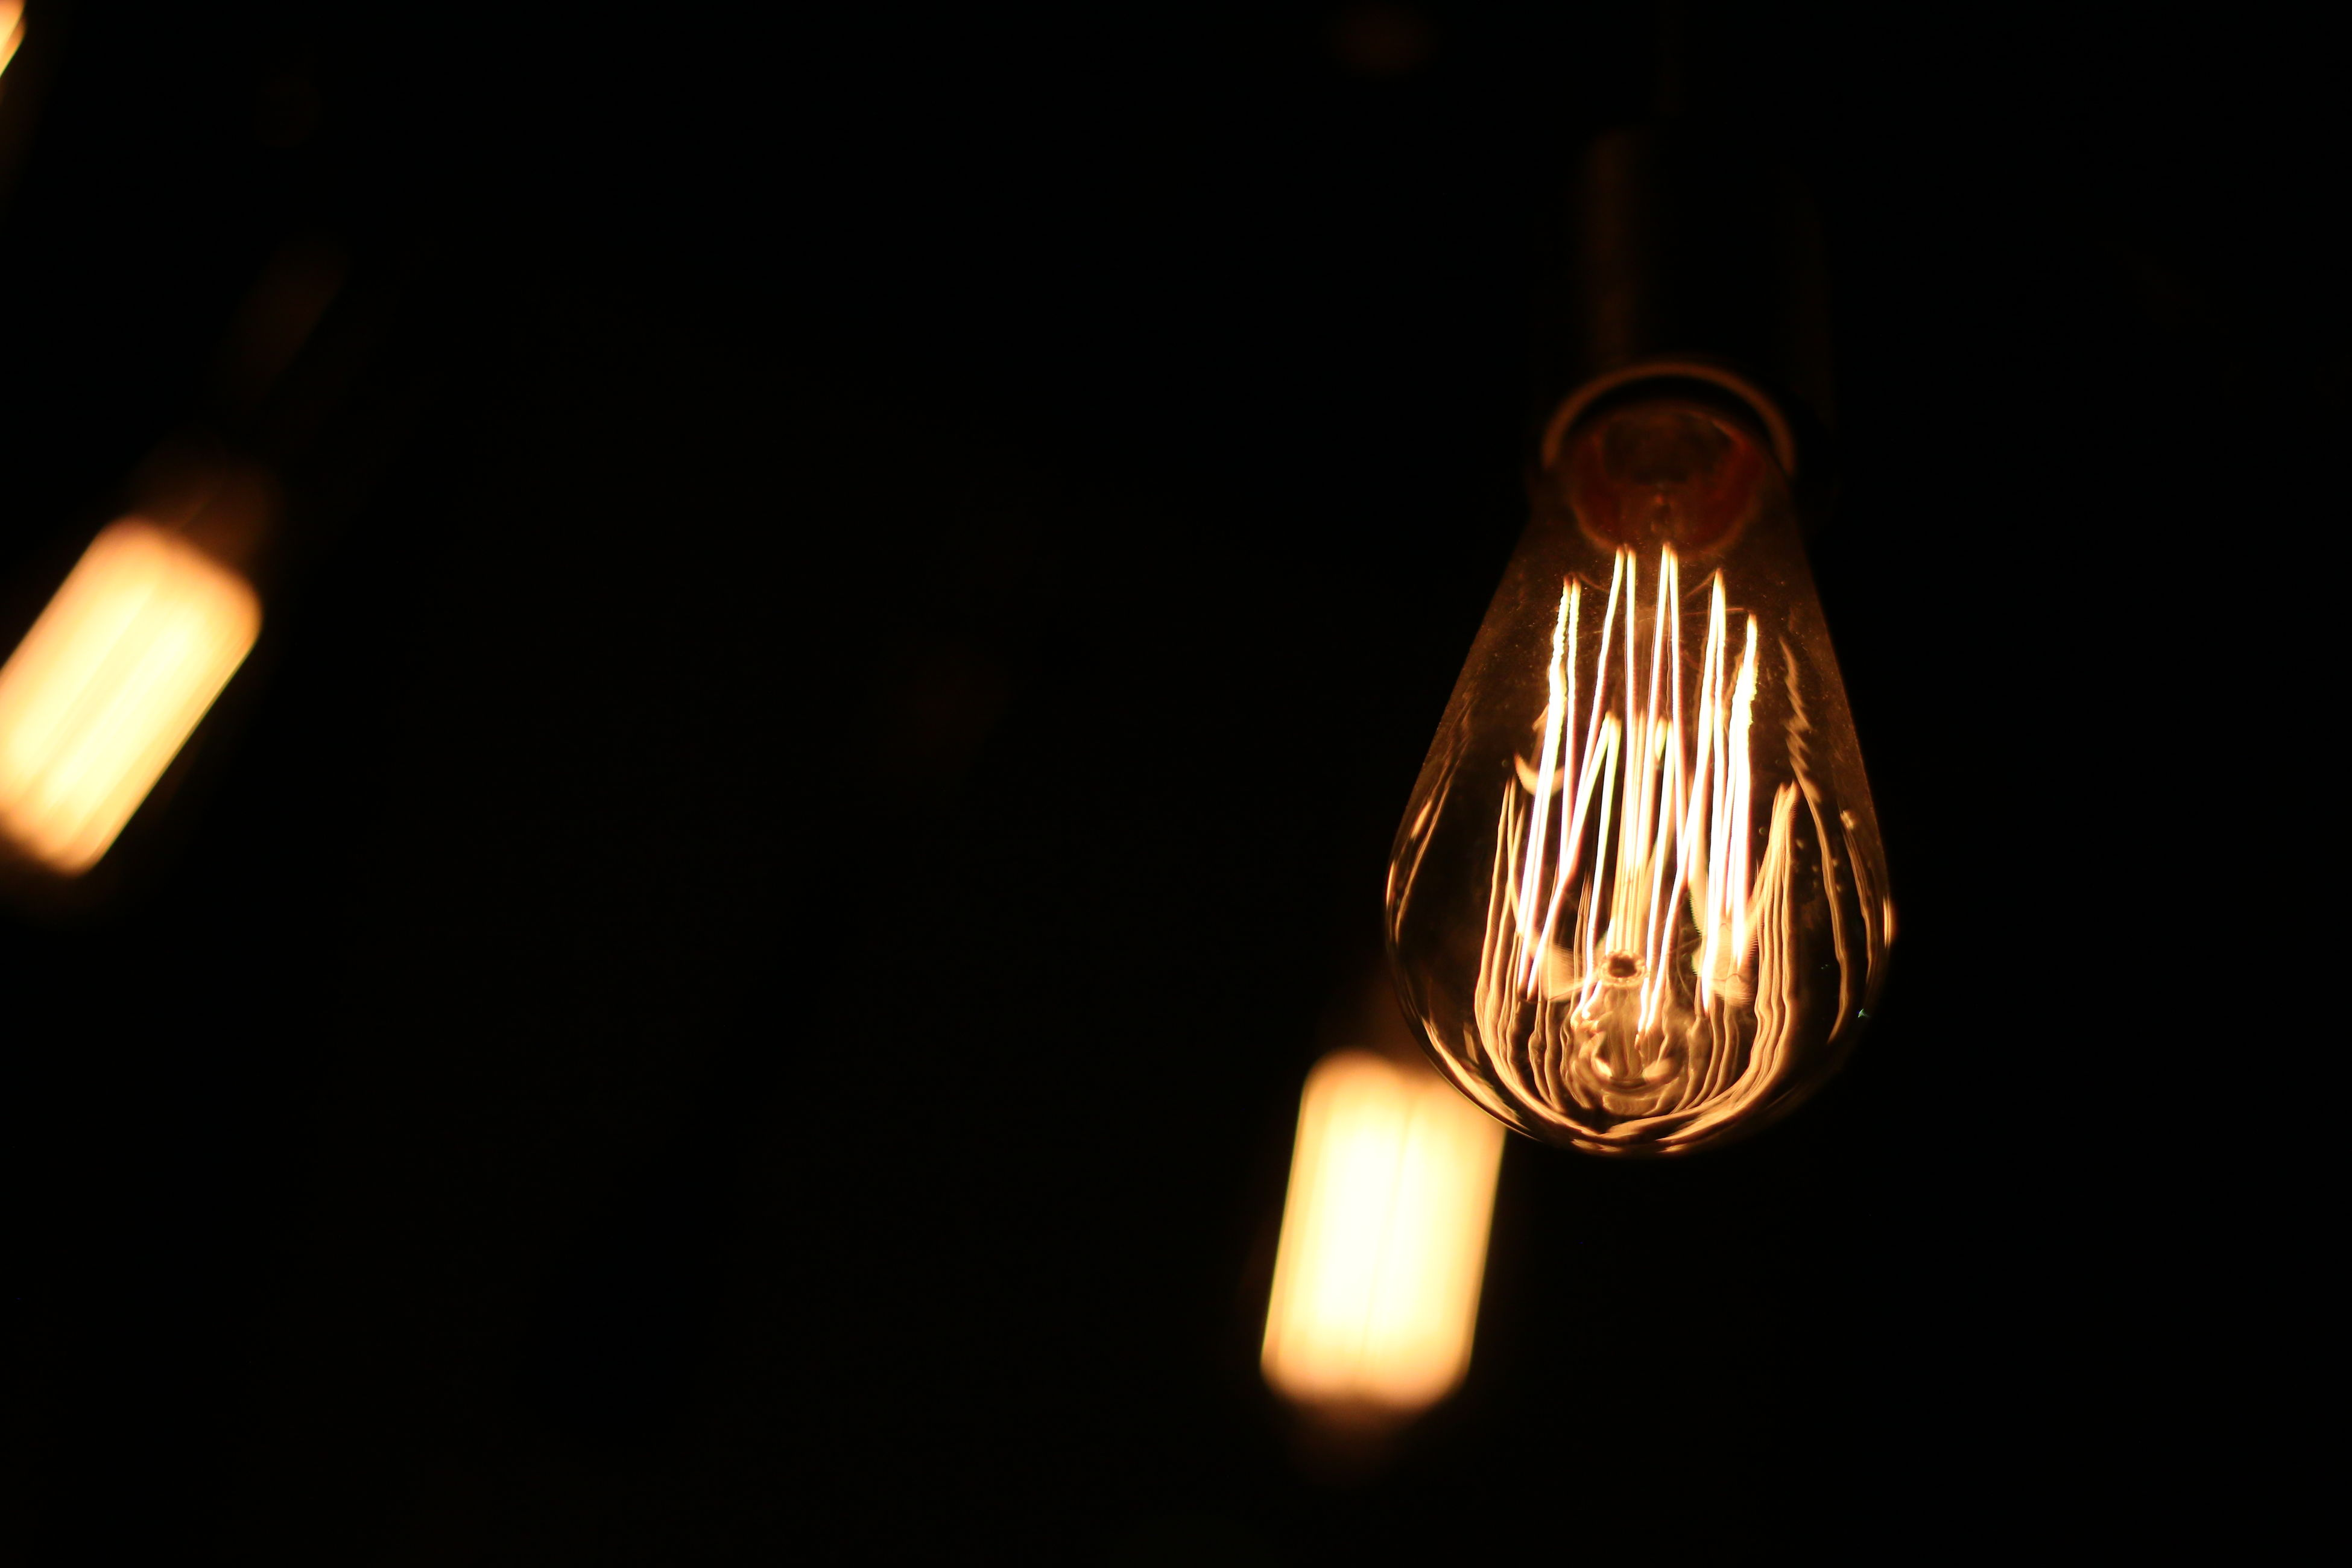 lighting equipment, electricity, illuminated, light bulb, low angle view, glowing, hanging, close-up, no people, filament, indoors, technology, night, darkroom